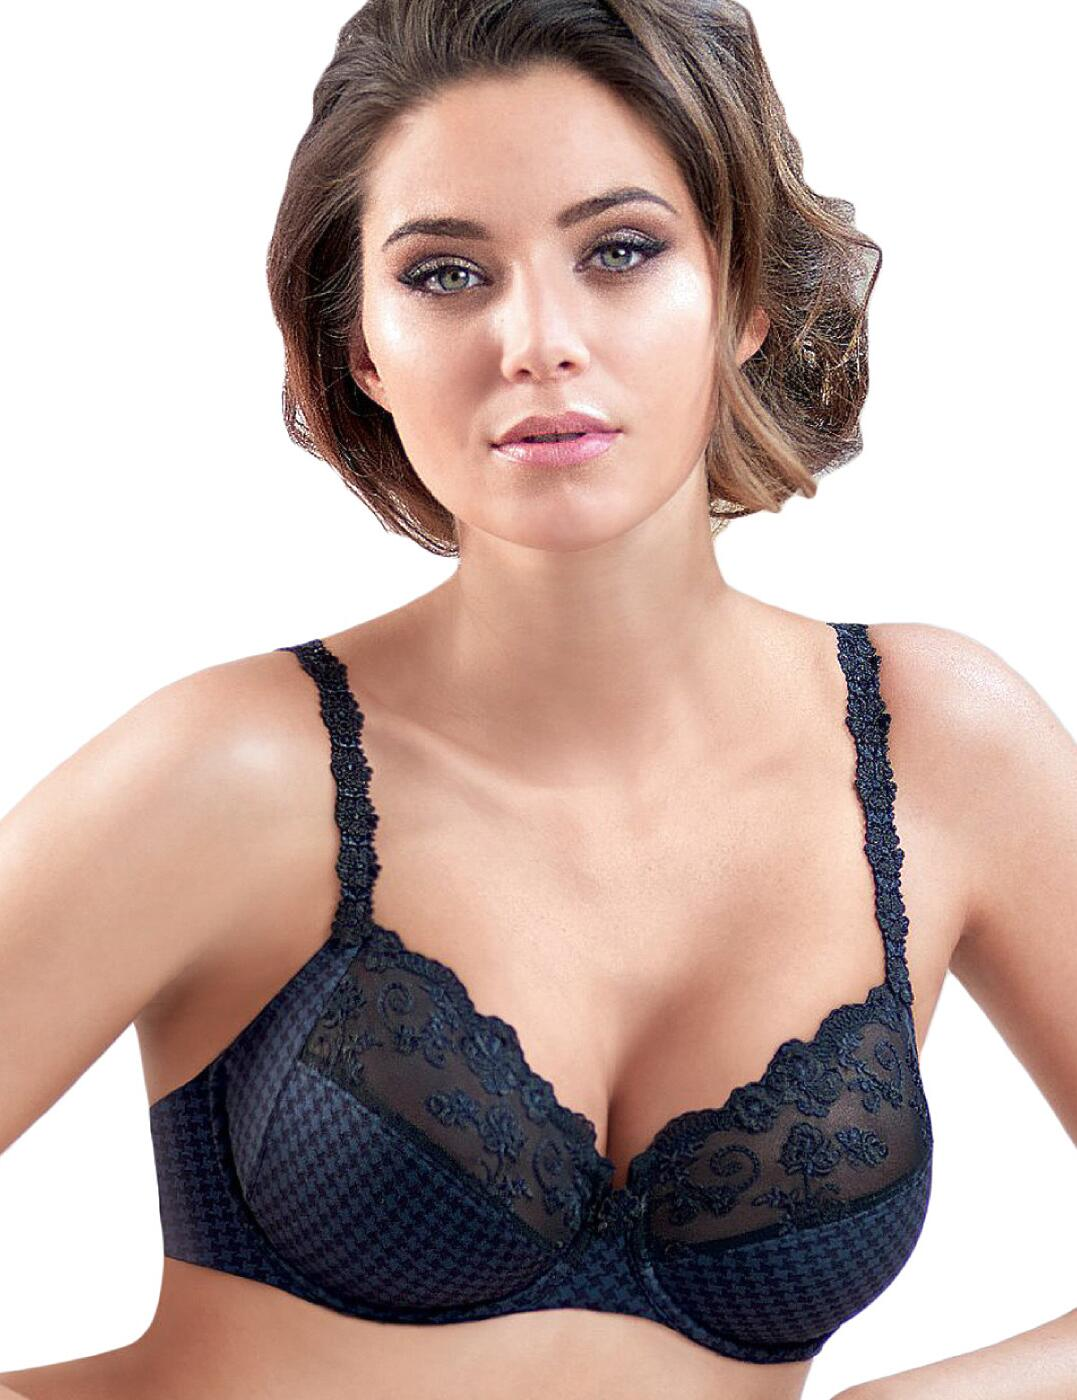 5674 Rosa Faia by Anita Josephine Underwired Balcony Bra - 5674 Navy/Black